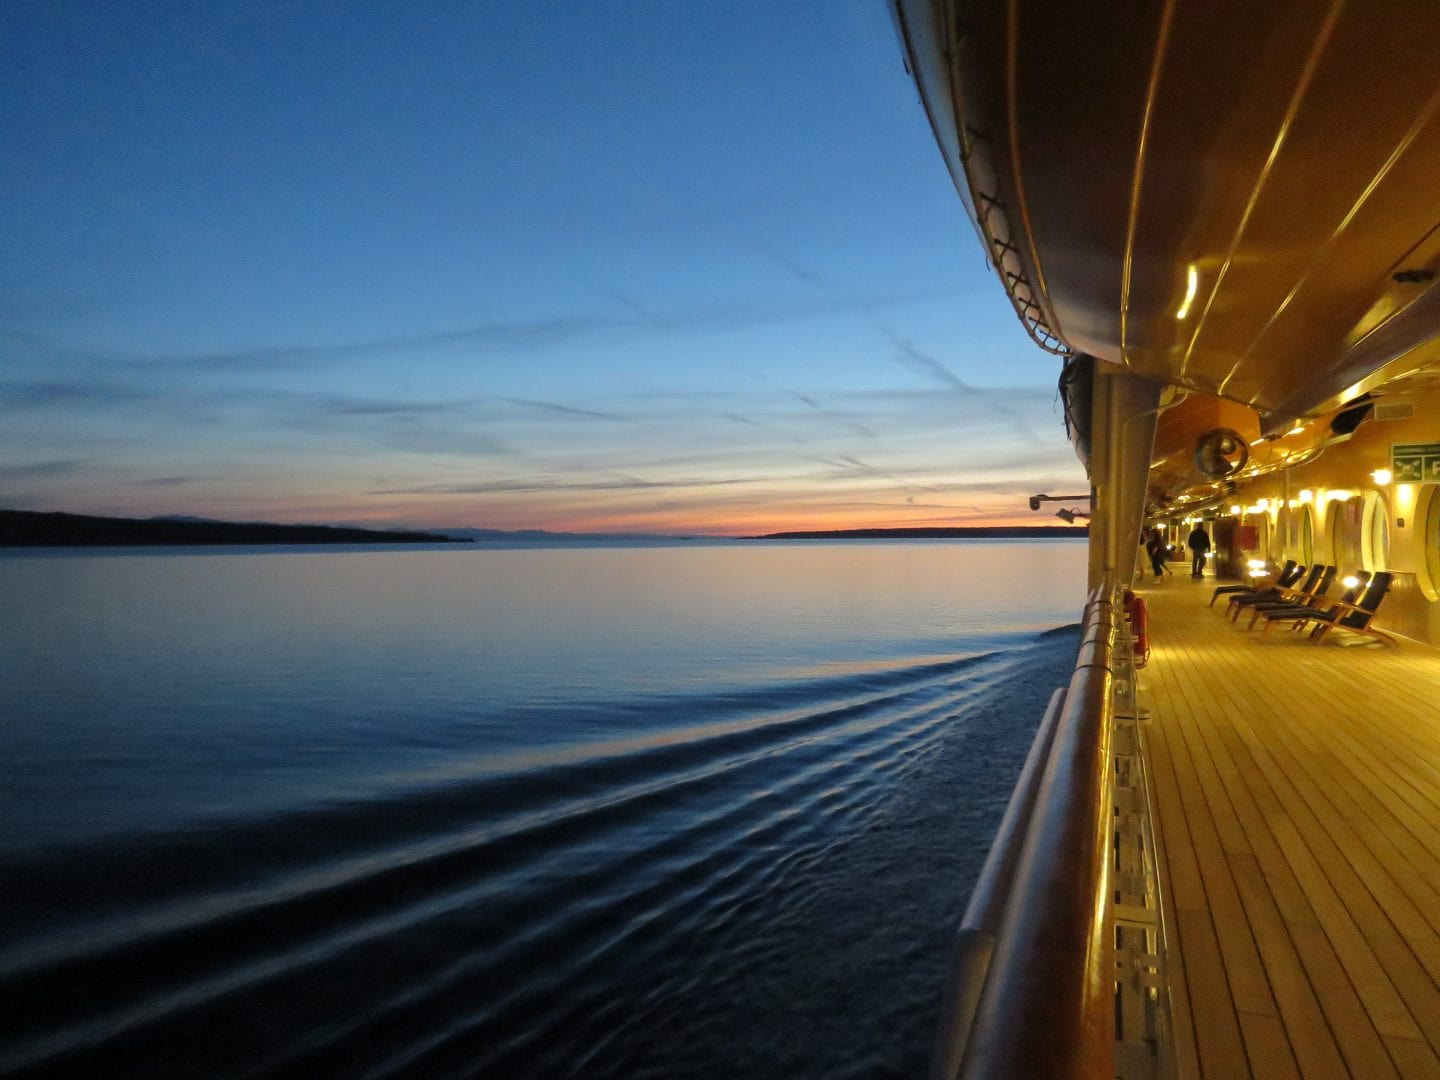 Take a walk around deck to keep fit on a cruise